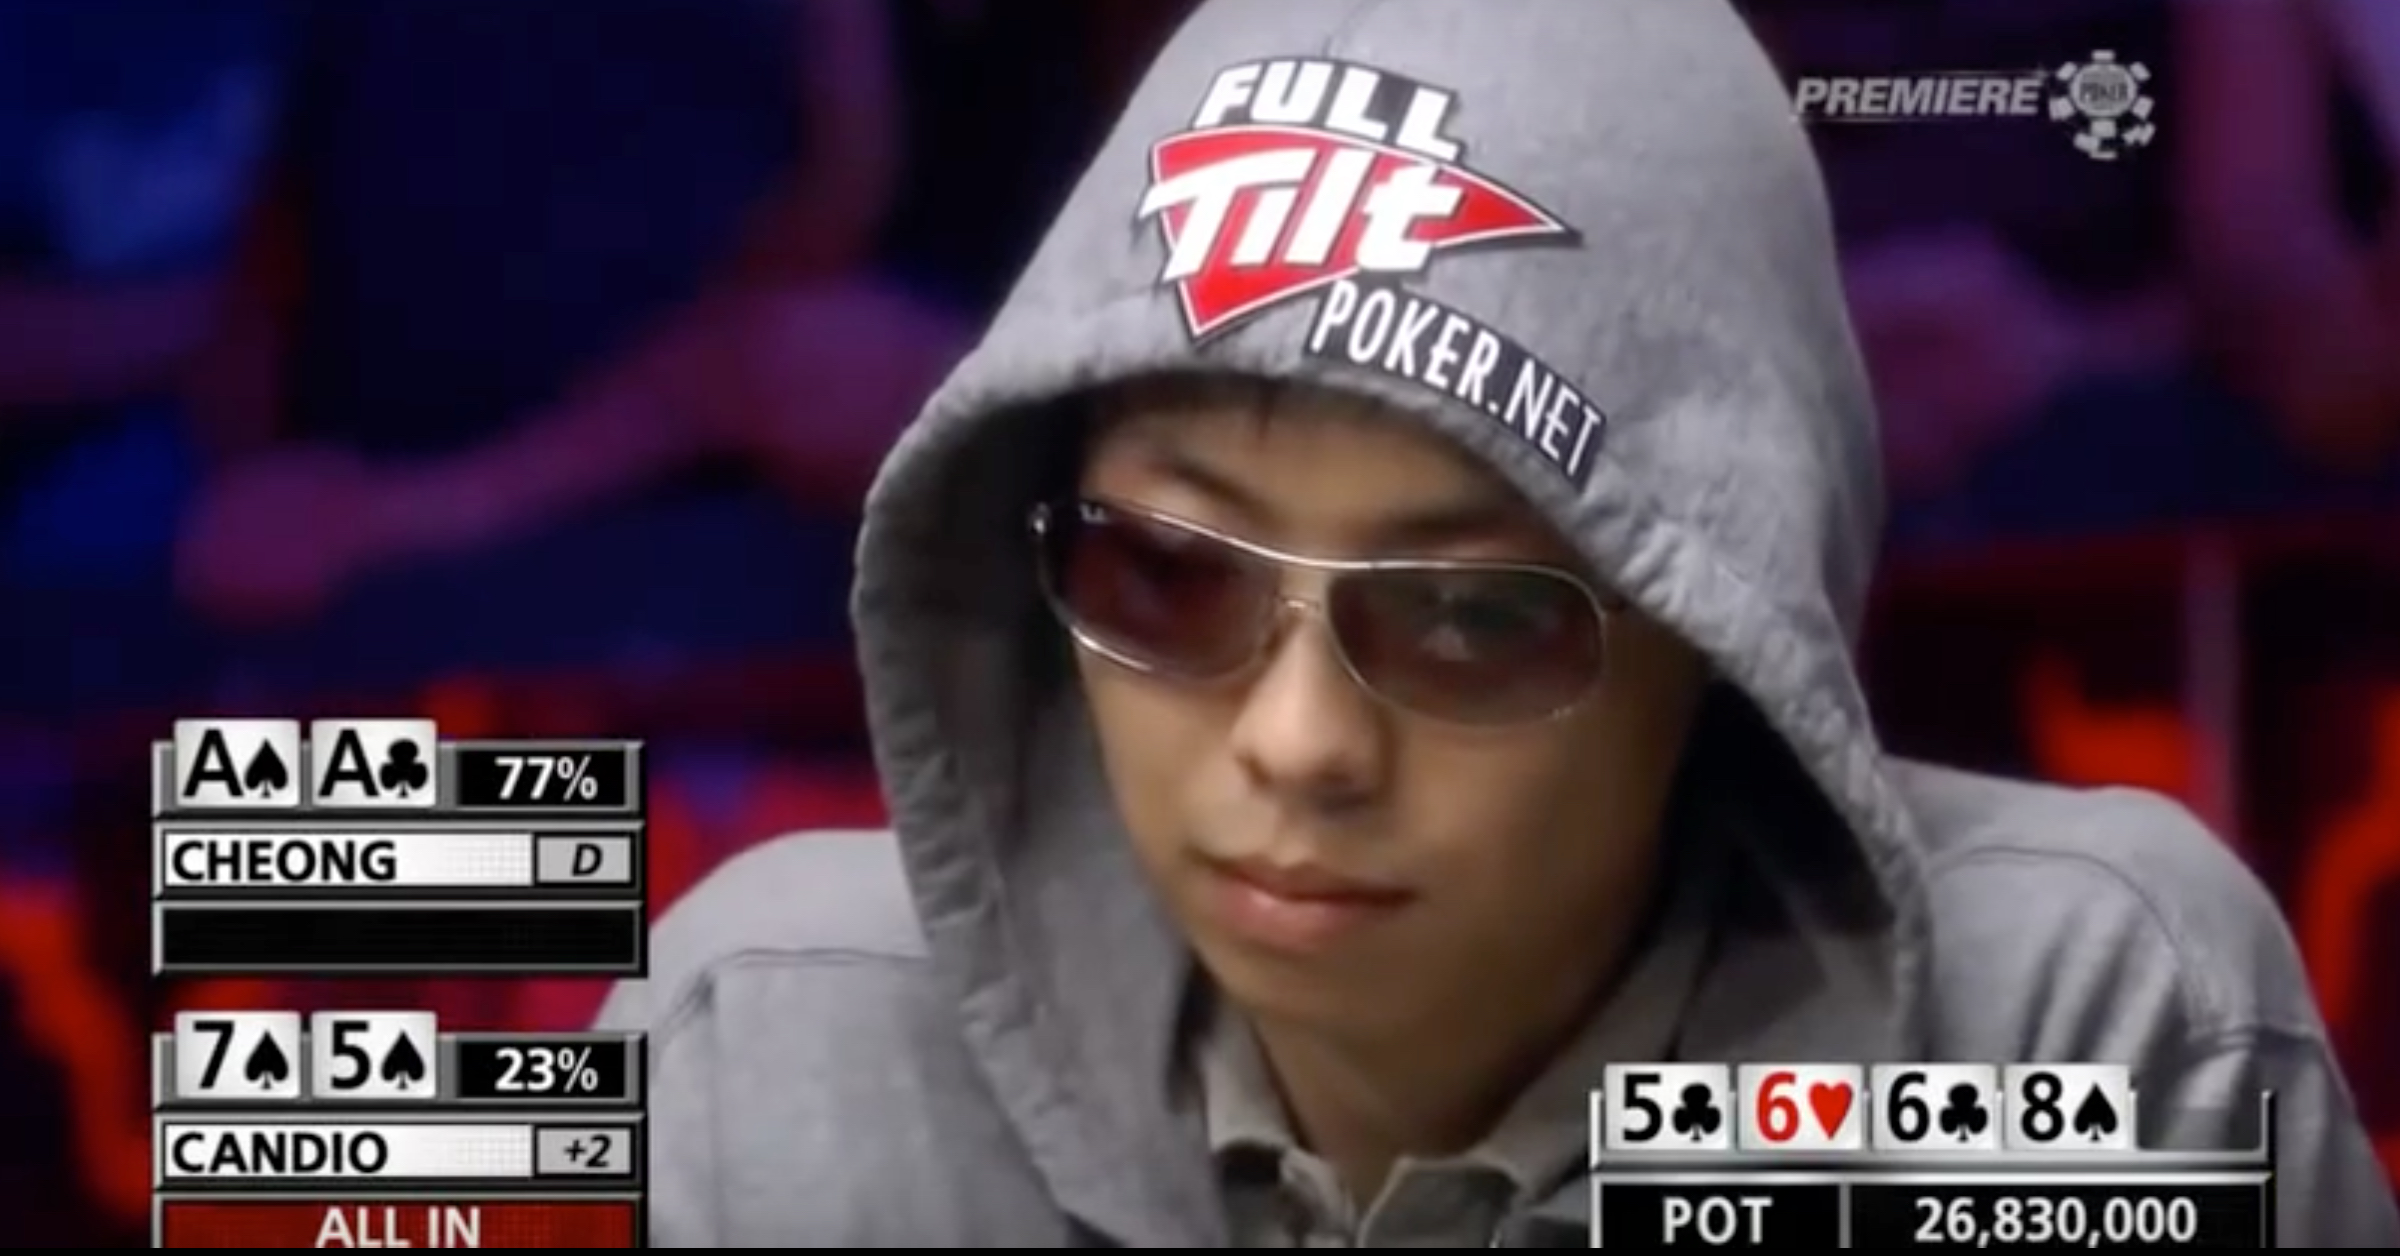 WATCH: Guy Loses His Mind After Winning $26,000,000 Hand In Poker